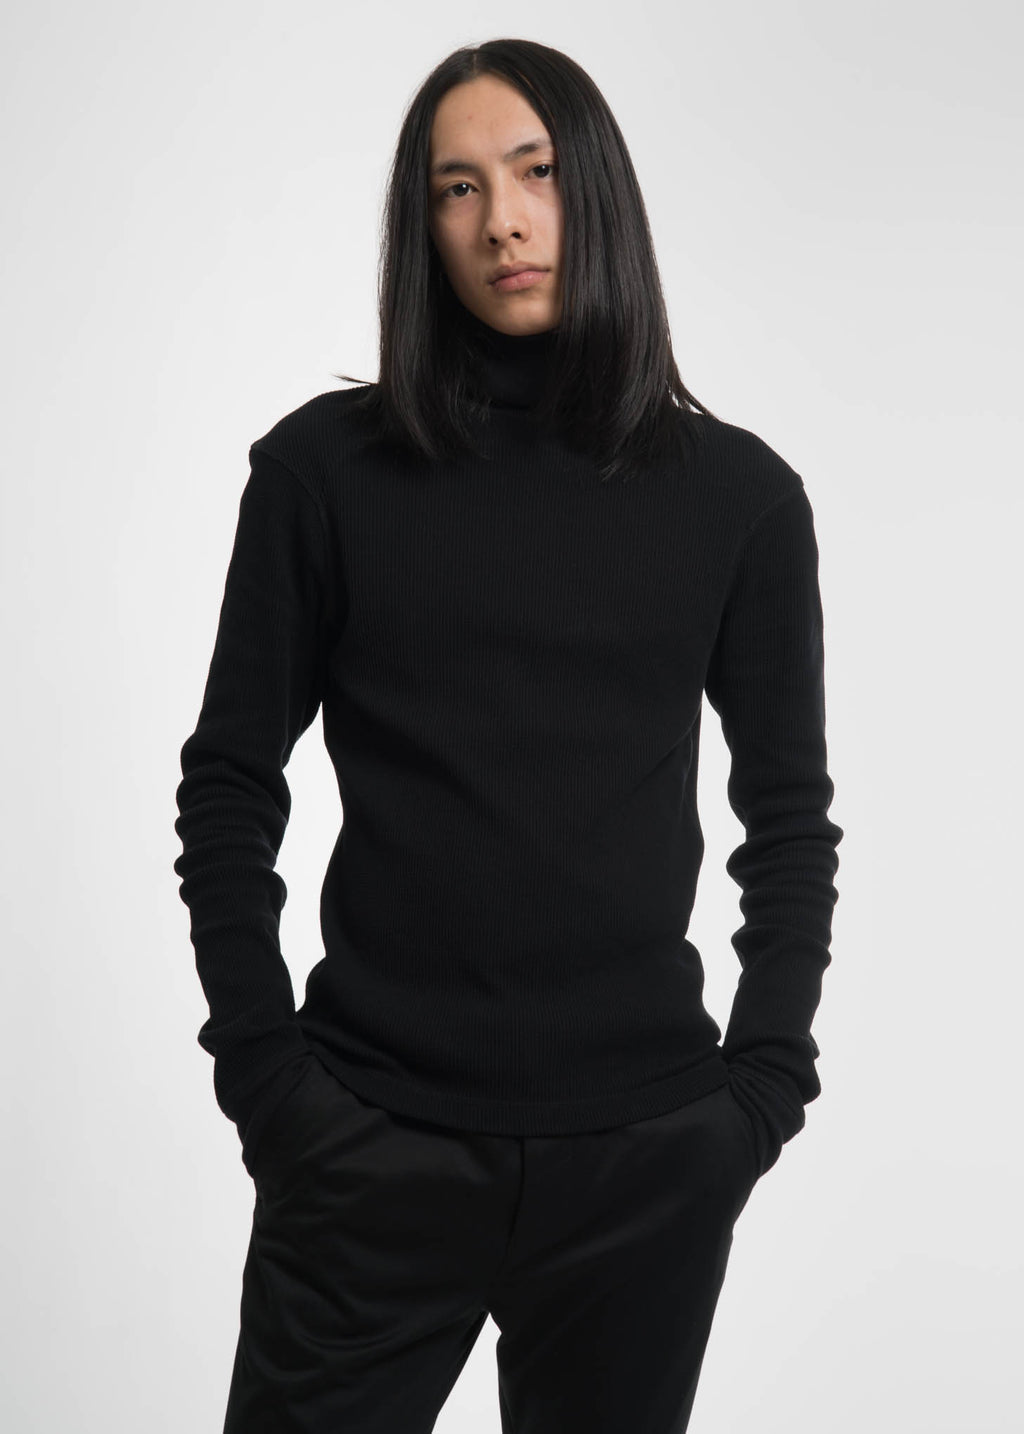 Helmut Lang, Black Dart Sleeve Turtleneck, 017 Shop